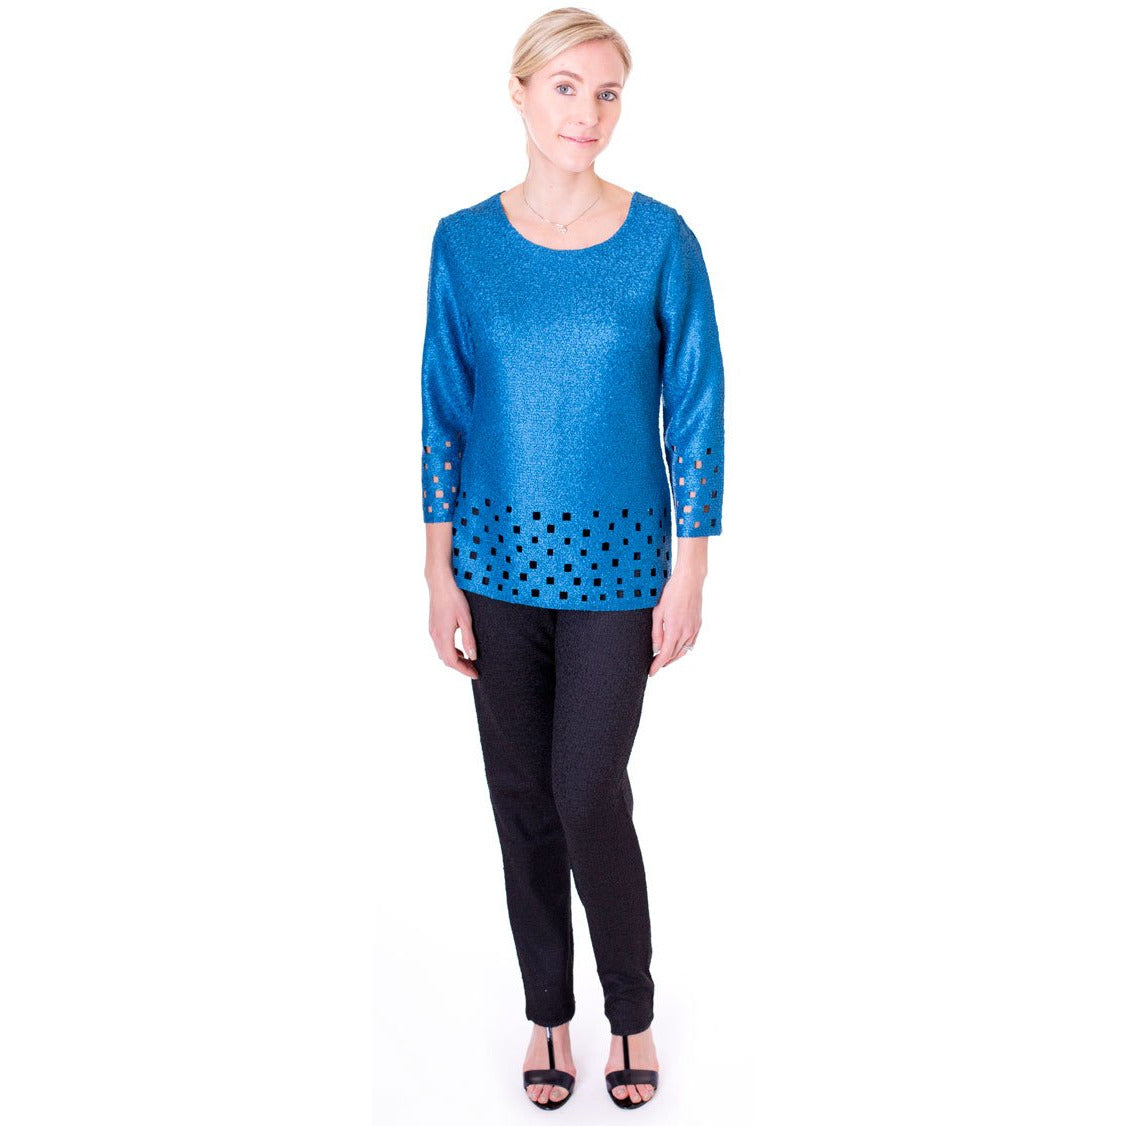 Geometric Laser Cut Top - Teal